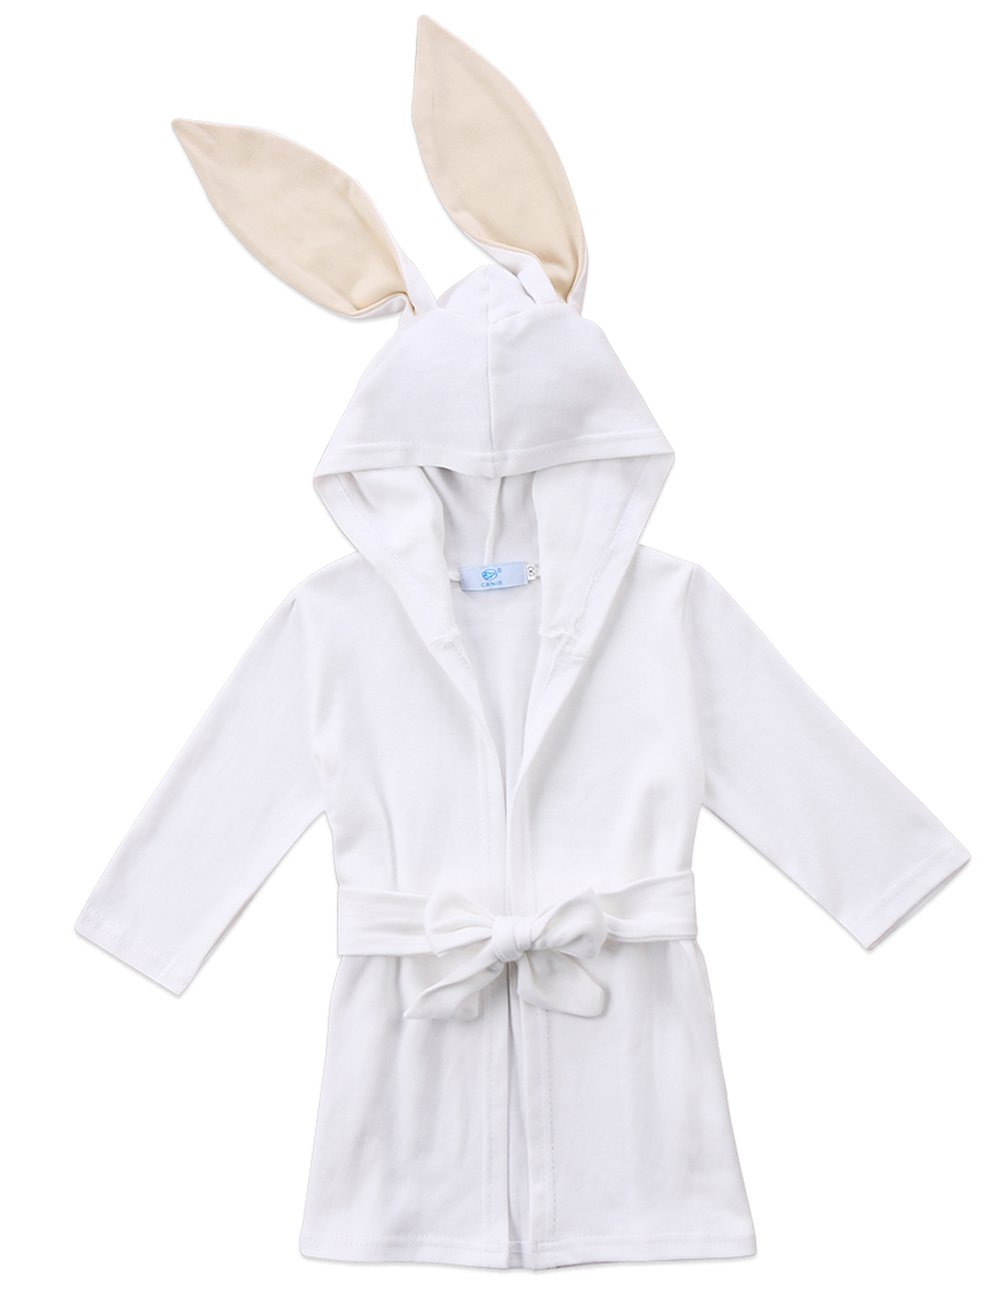 Baby Boys Girls Long Sleeve Hooded Bathrobes Cartoon Animal Rabbit Costume Pajamas